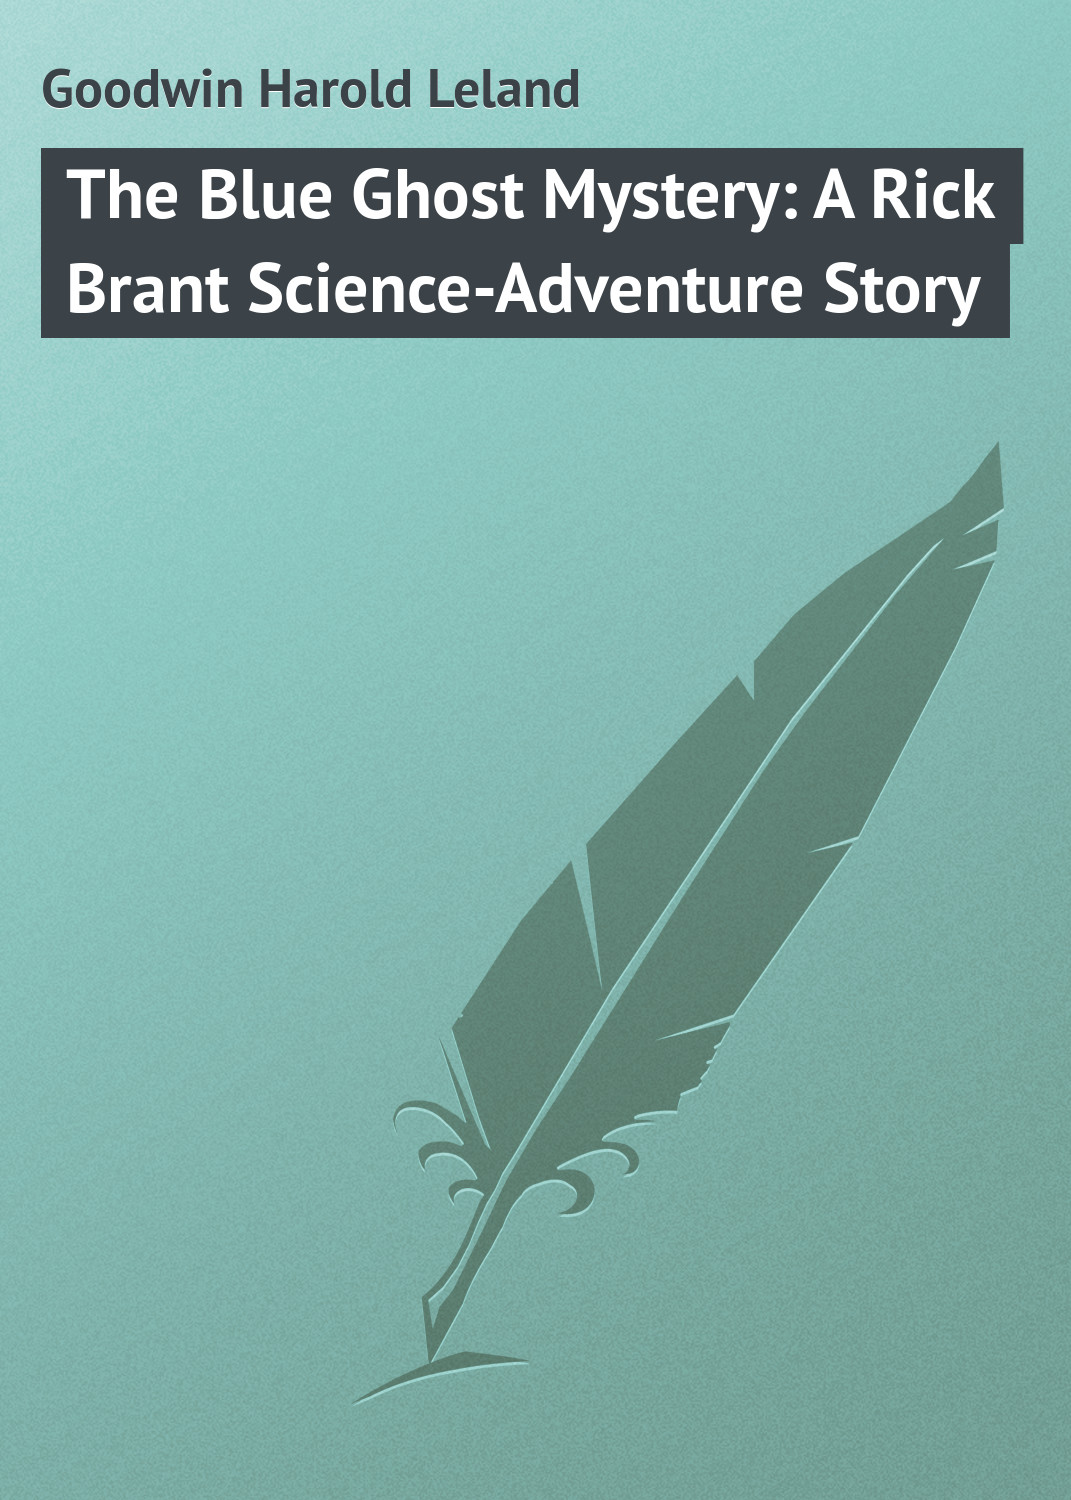 Goodwin Harold Leland The Blue Ghost Mystery: A Rick Brant Science-Adventure Story goodwin harold leland the flying stingaree a rick brant science adventure story